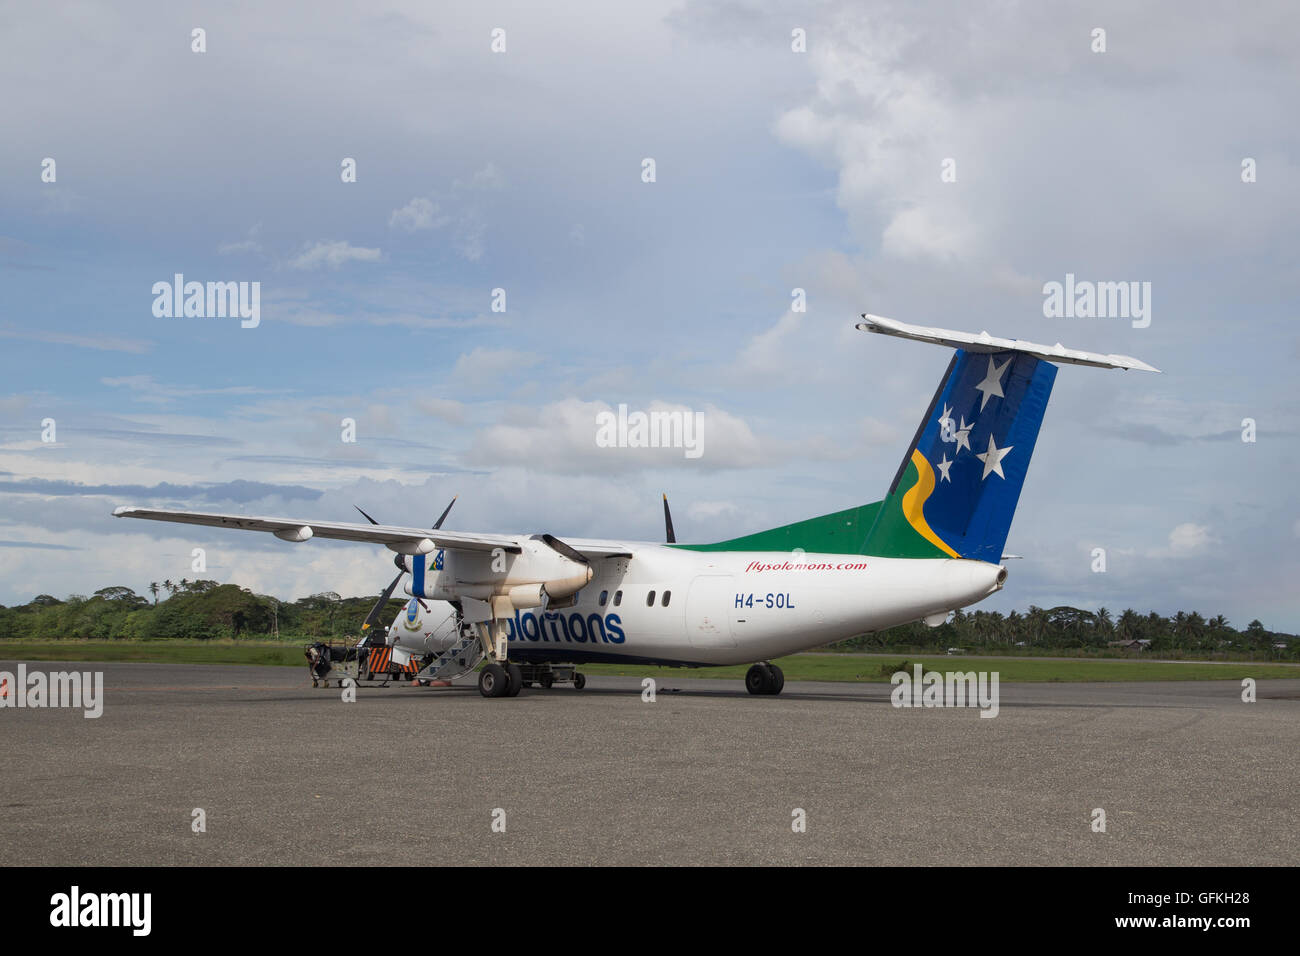 Honiara, Solomon Islands - May 27, 2015: Small propeller plane parked at the airport - Stock Image